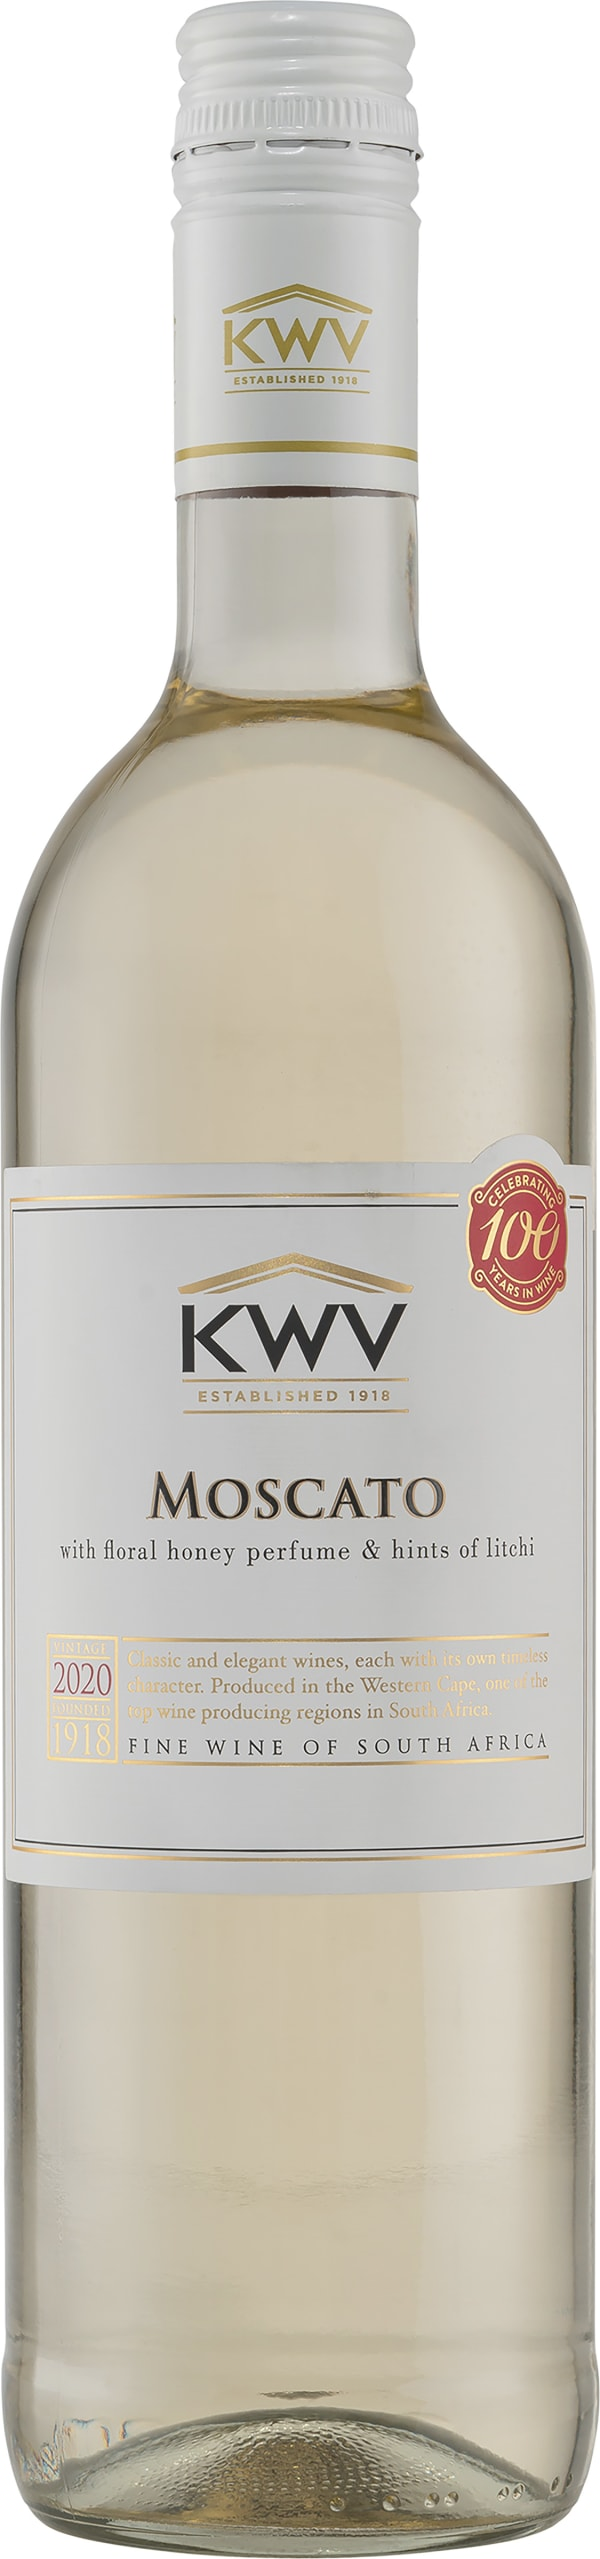 KWV Classic Collection Moscato 2019